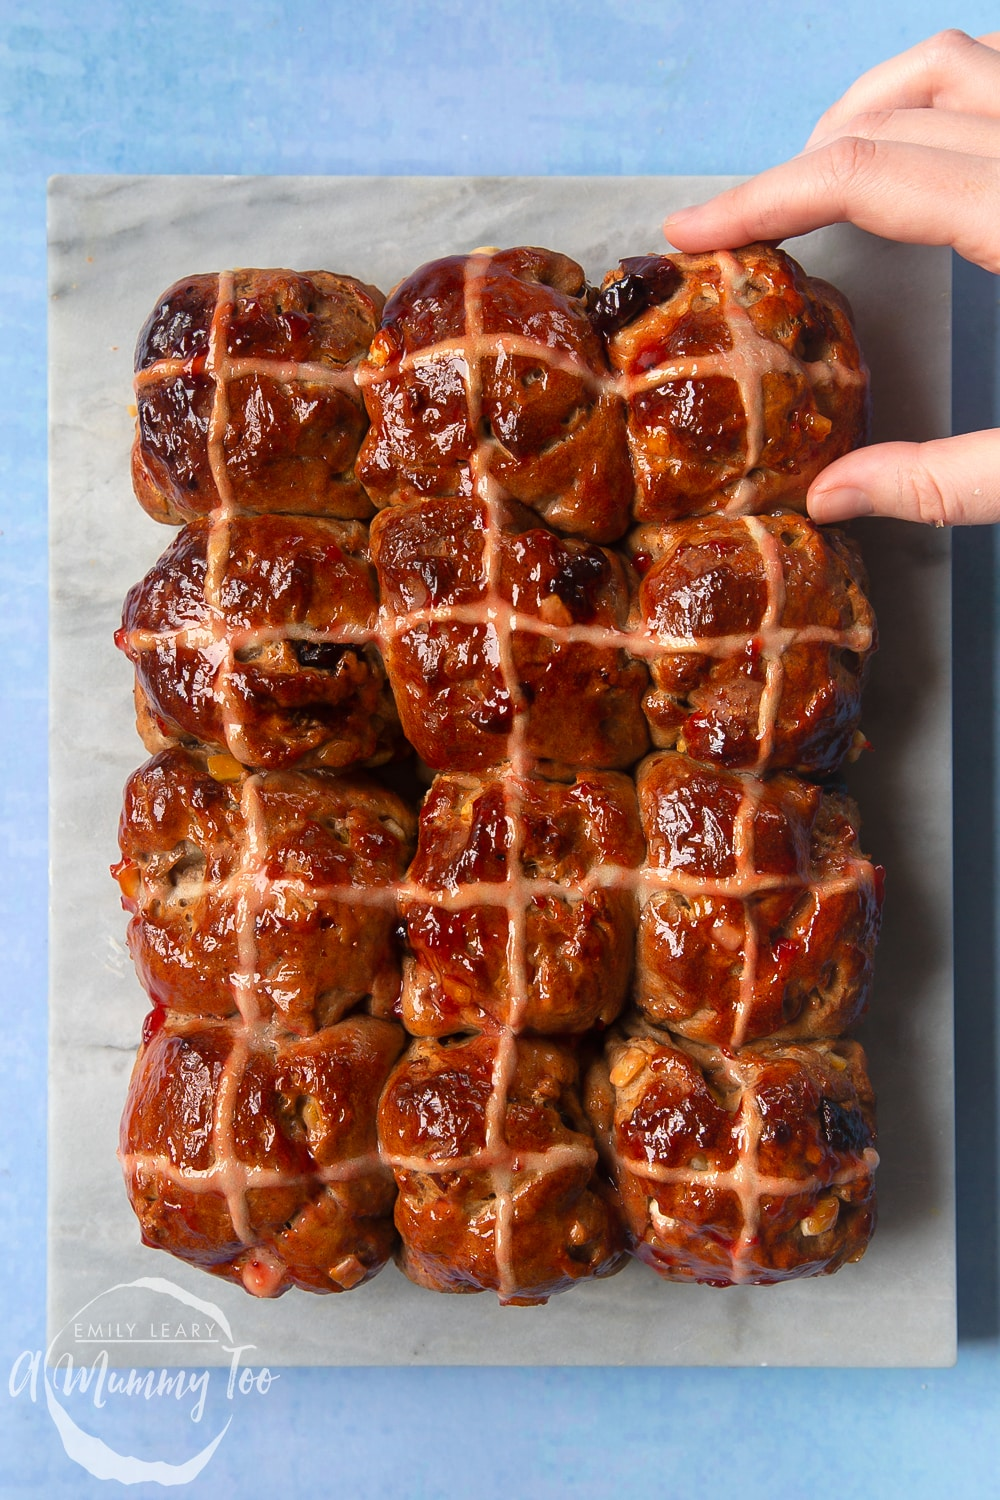 12 vegan hot cross buns on a marble board. A hand reaches in as if to take one.